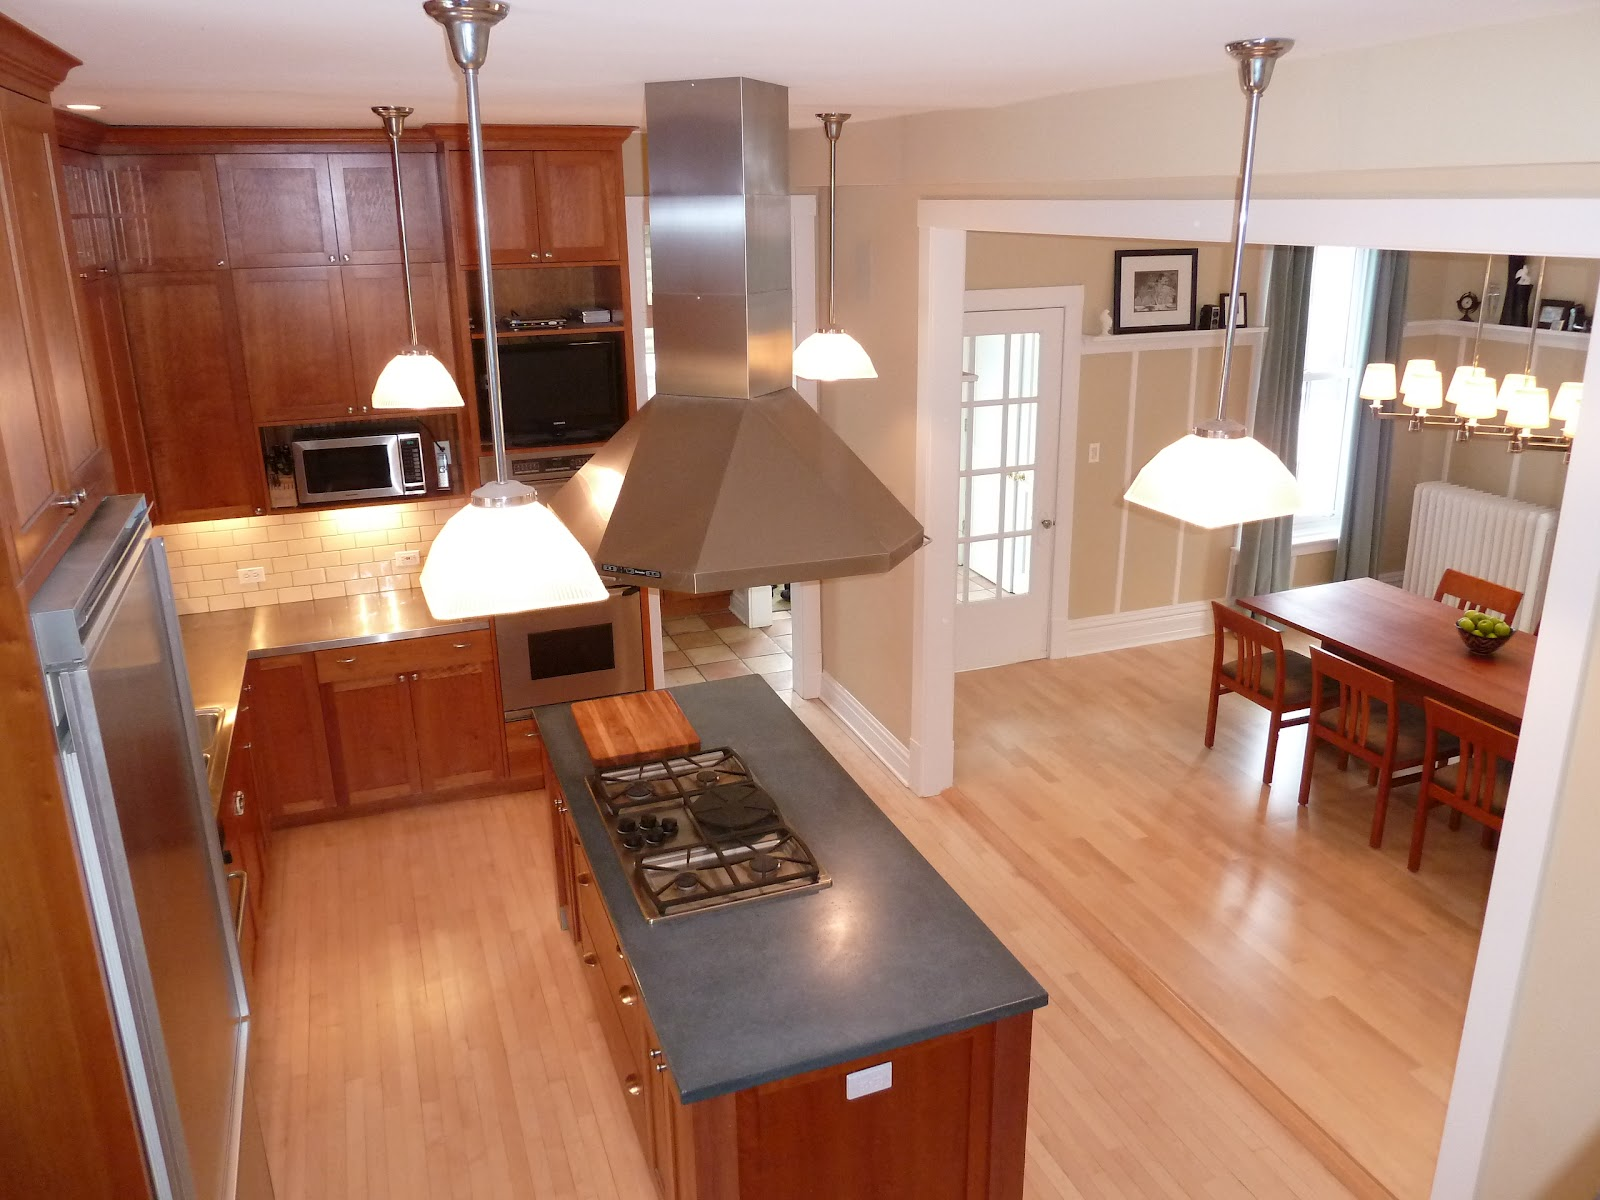 The Chicago Real Estate Local For Sale Now Lincoln